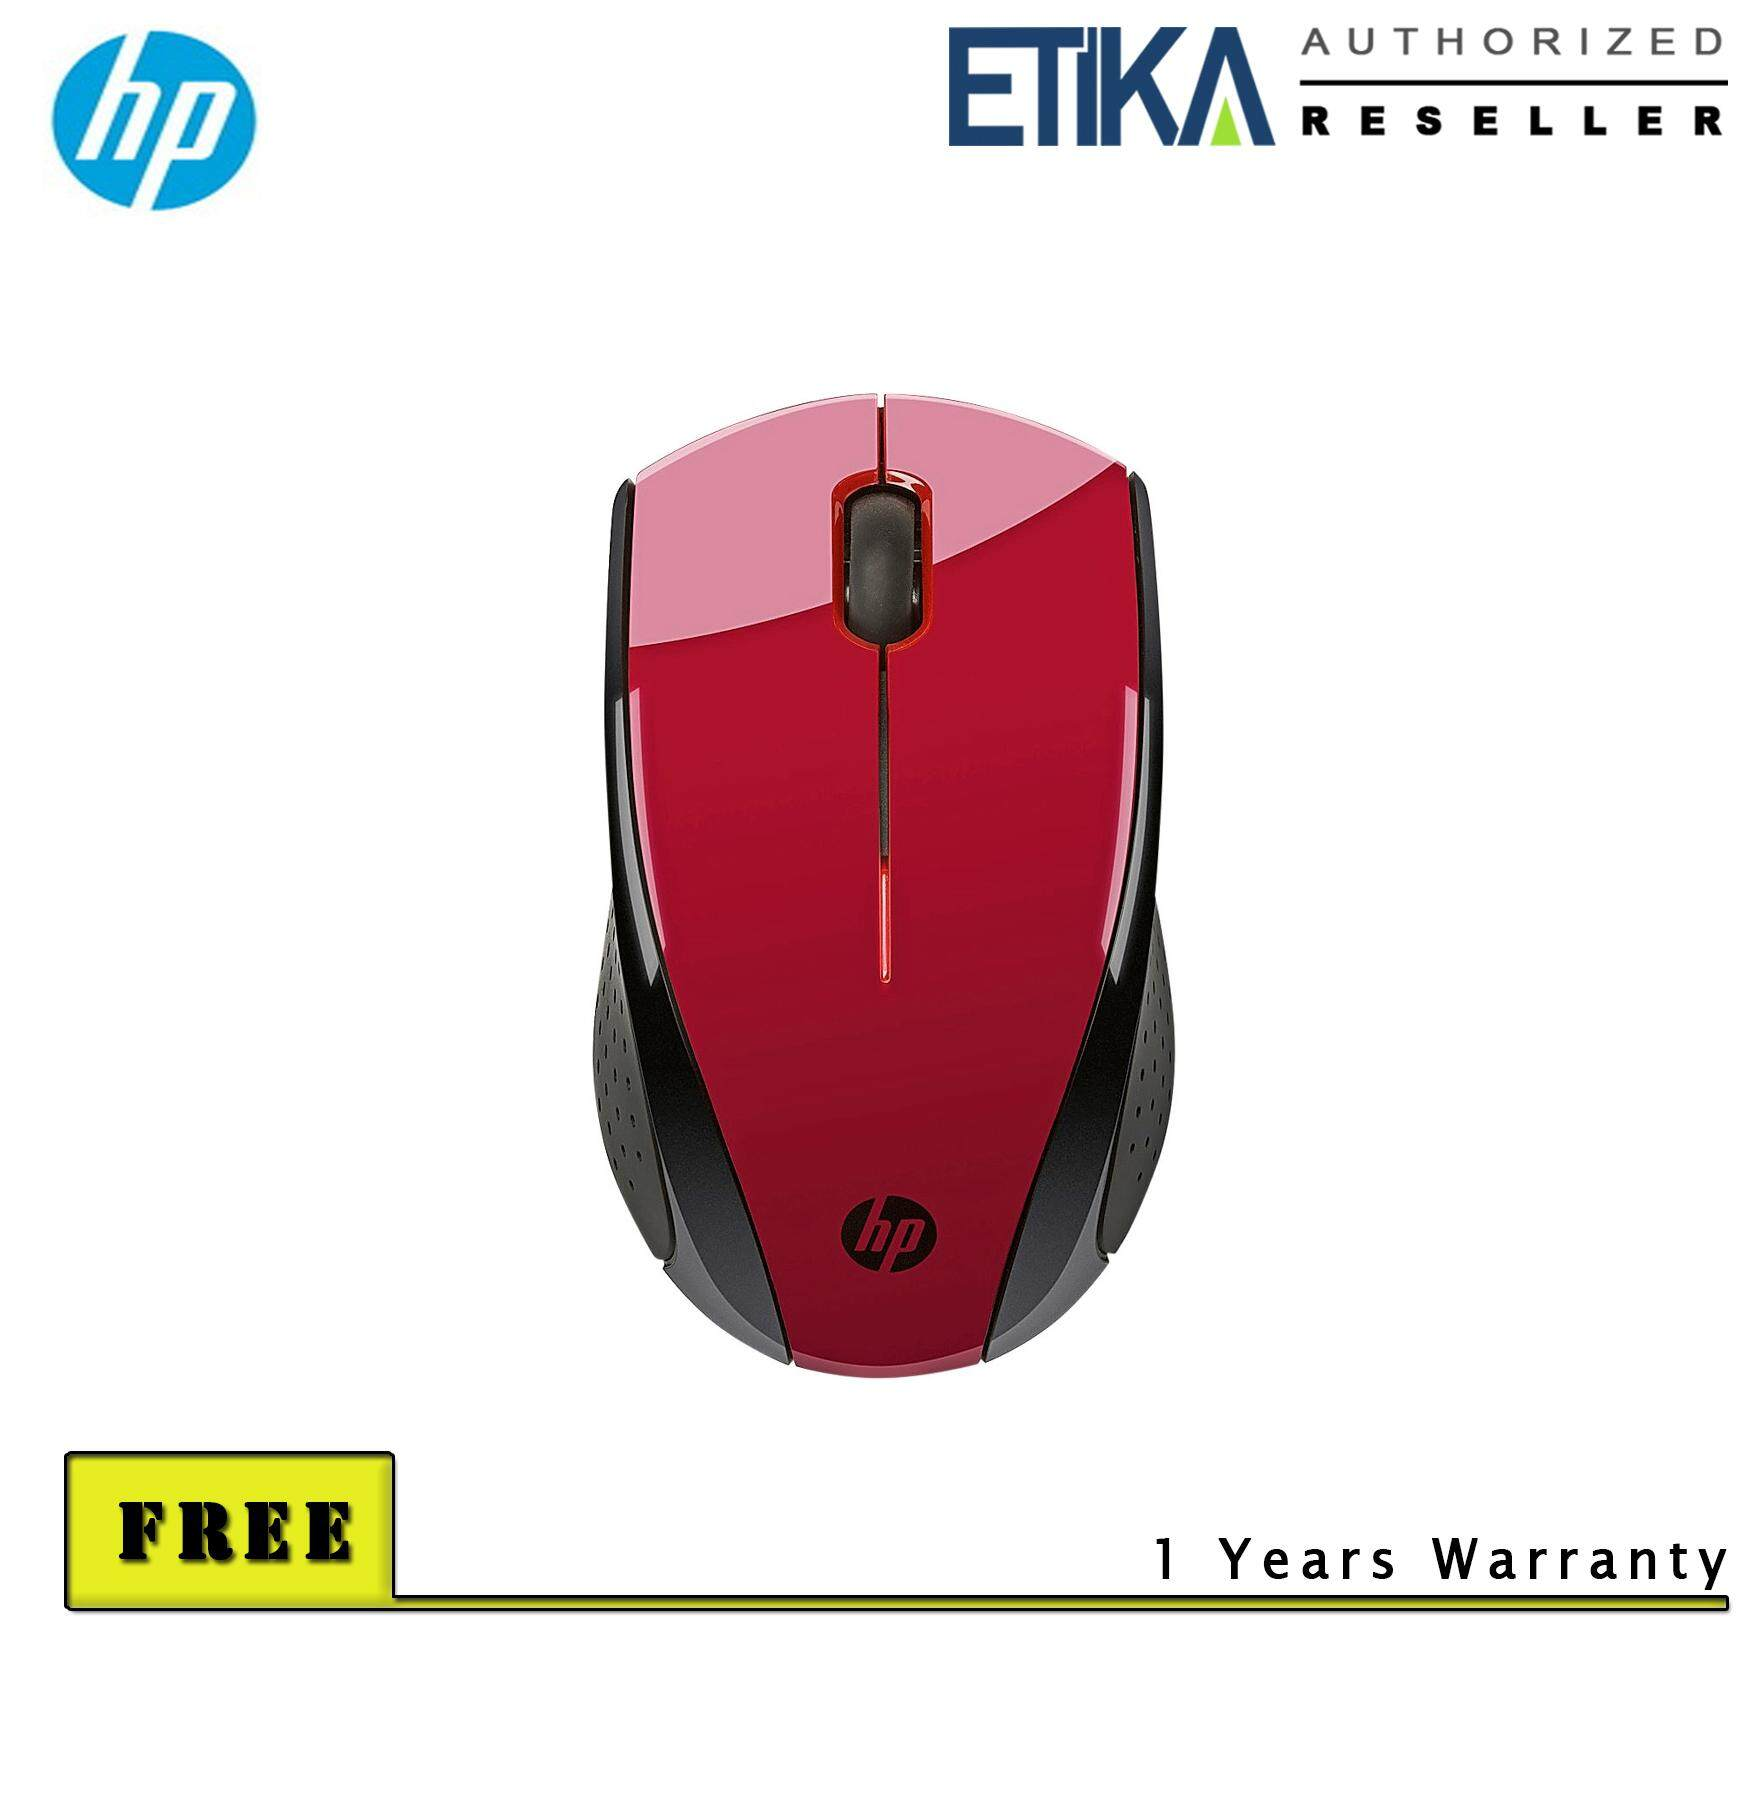 HP X3000 Wireless Mouse - Red [K5D26AA] Malaysia